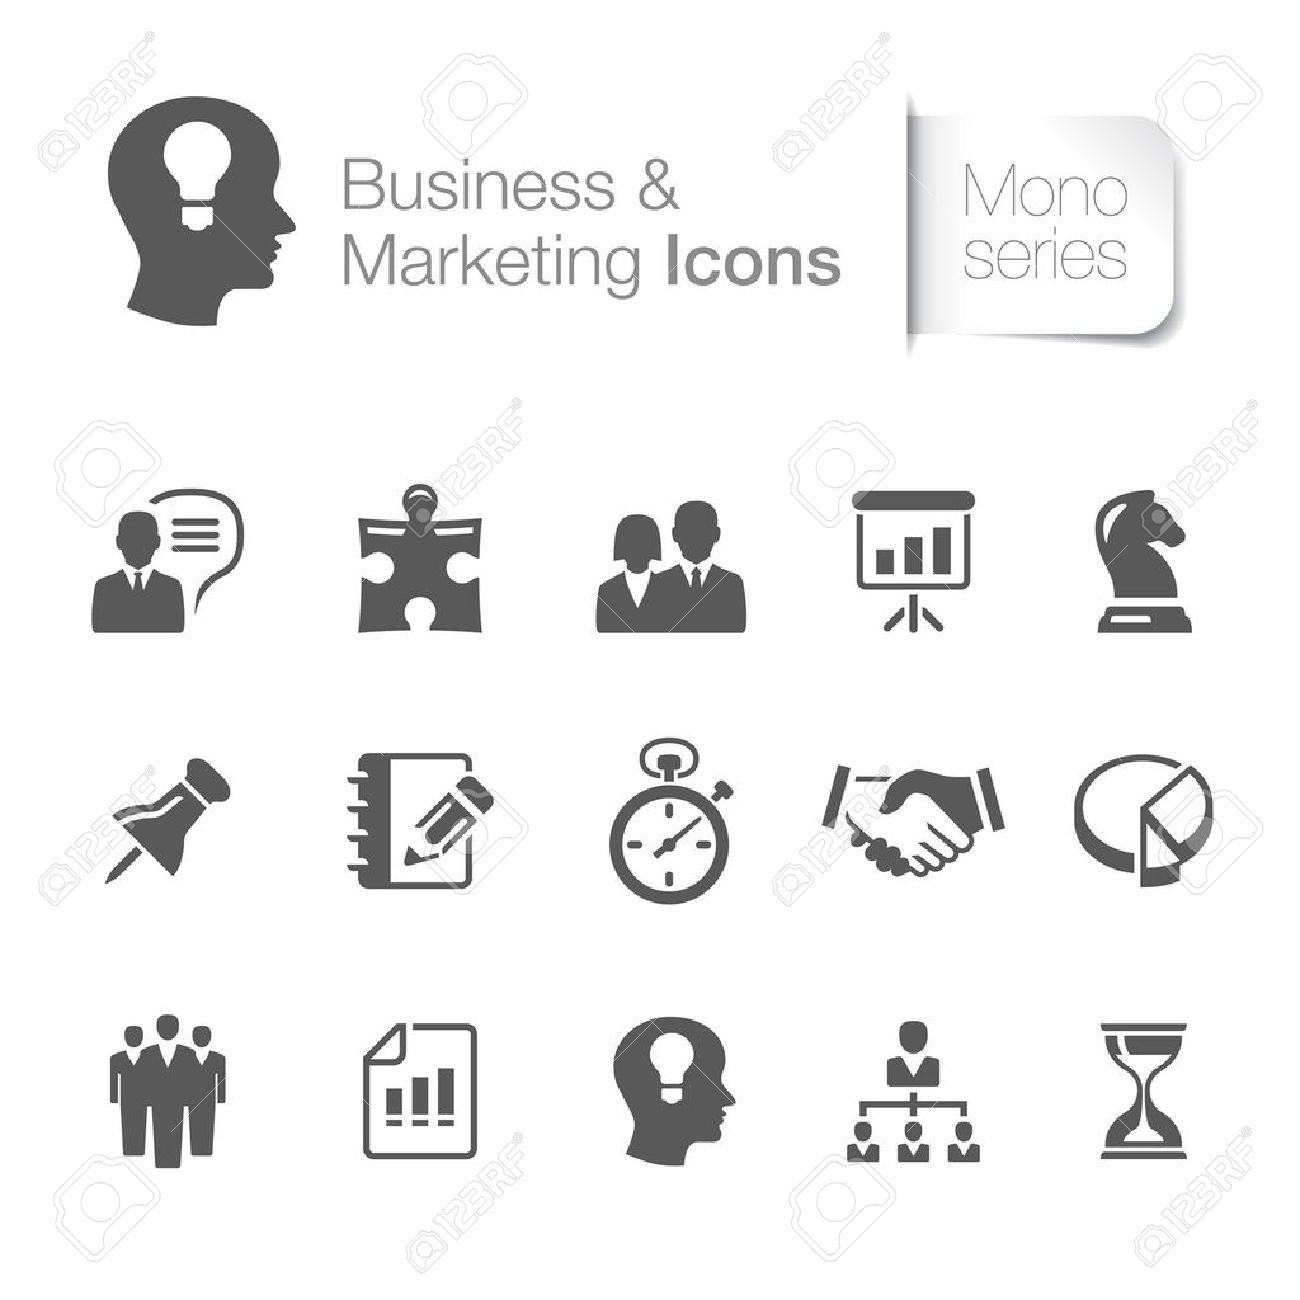 Business and marketing related icons - 20563086